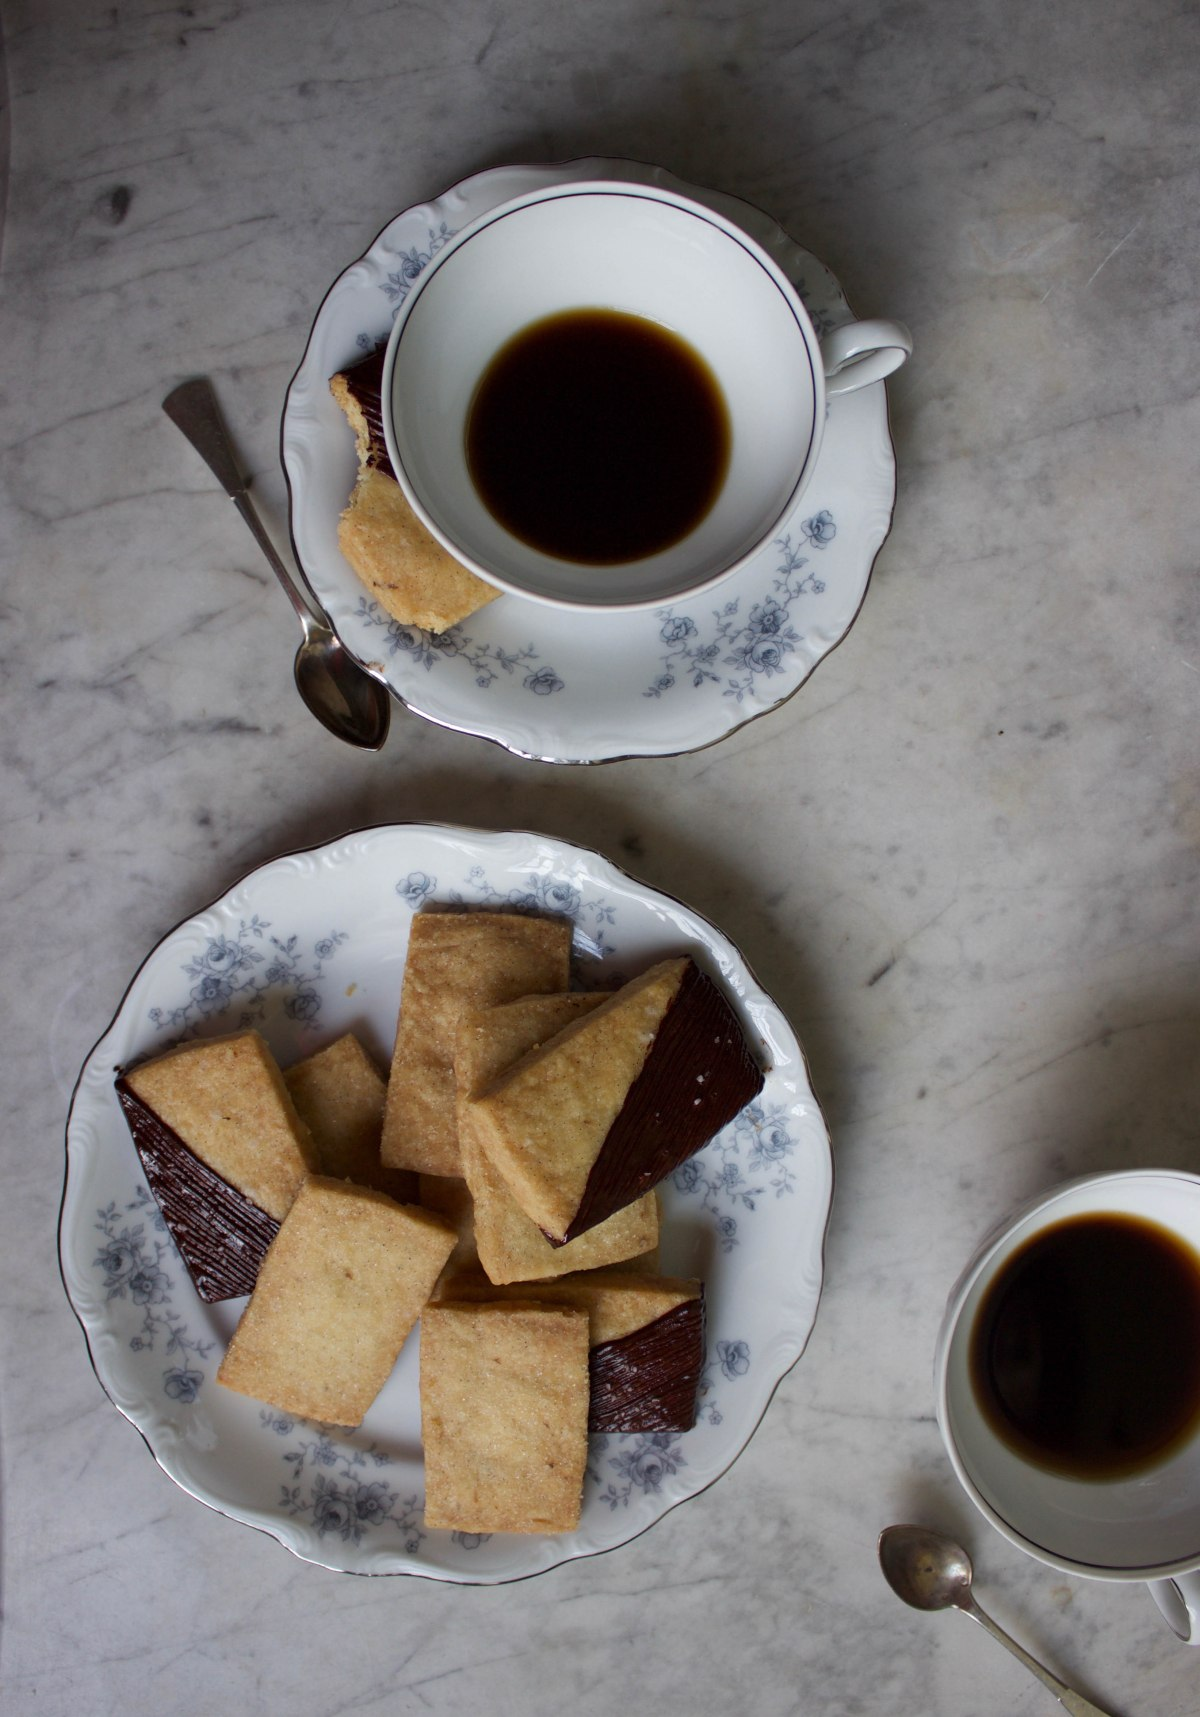 Black coffee in white and blue teacups and shortbread dipped in dark chocolate and sprinkled with sea salt.